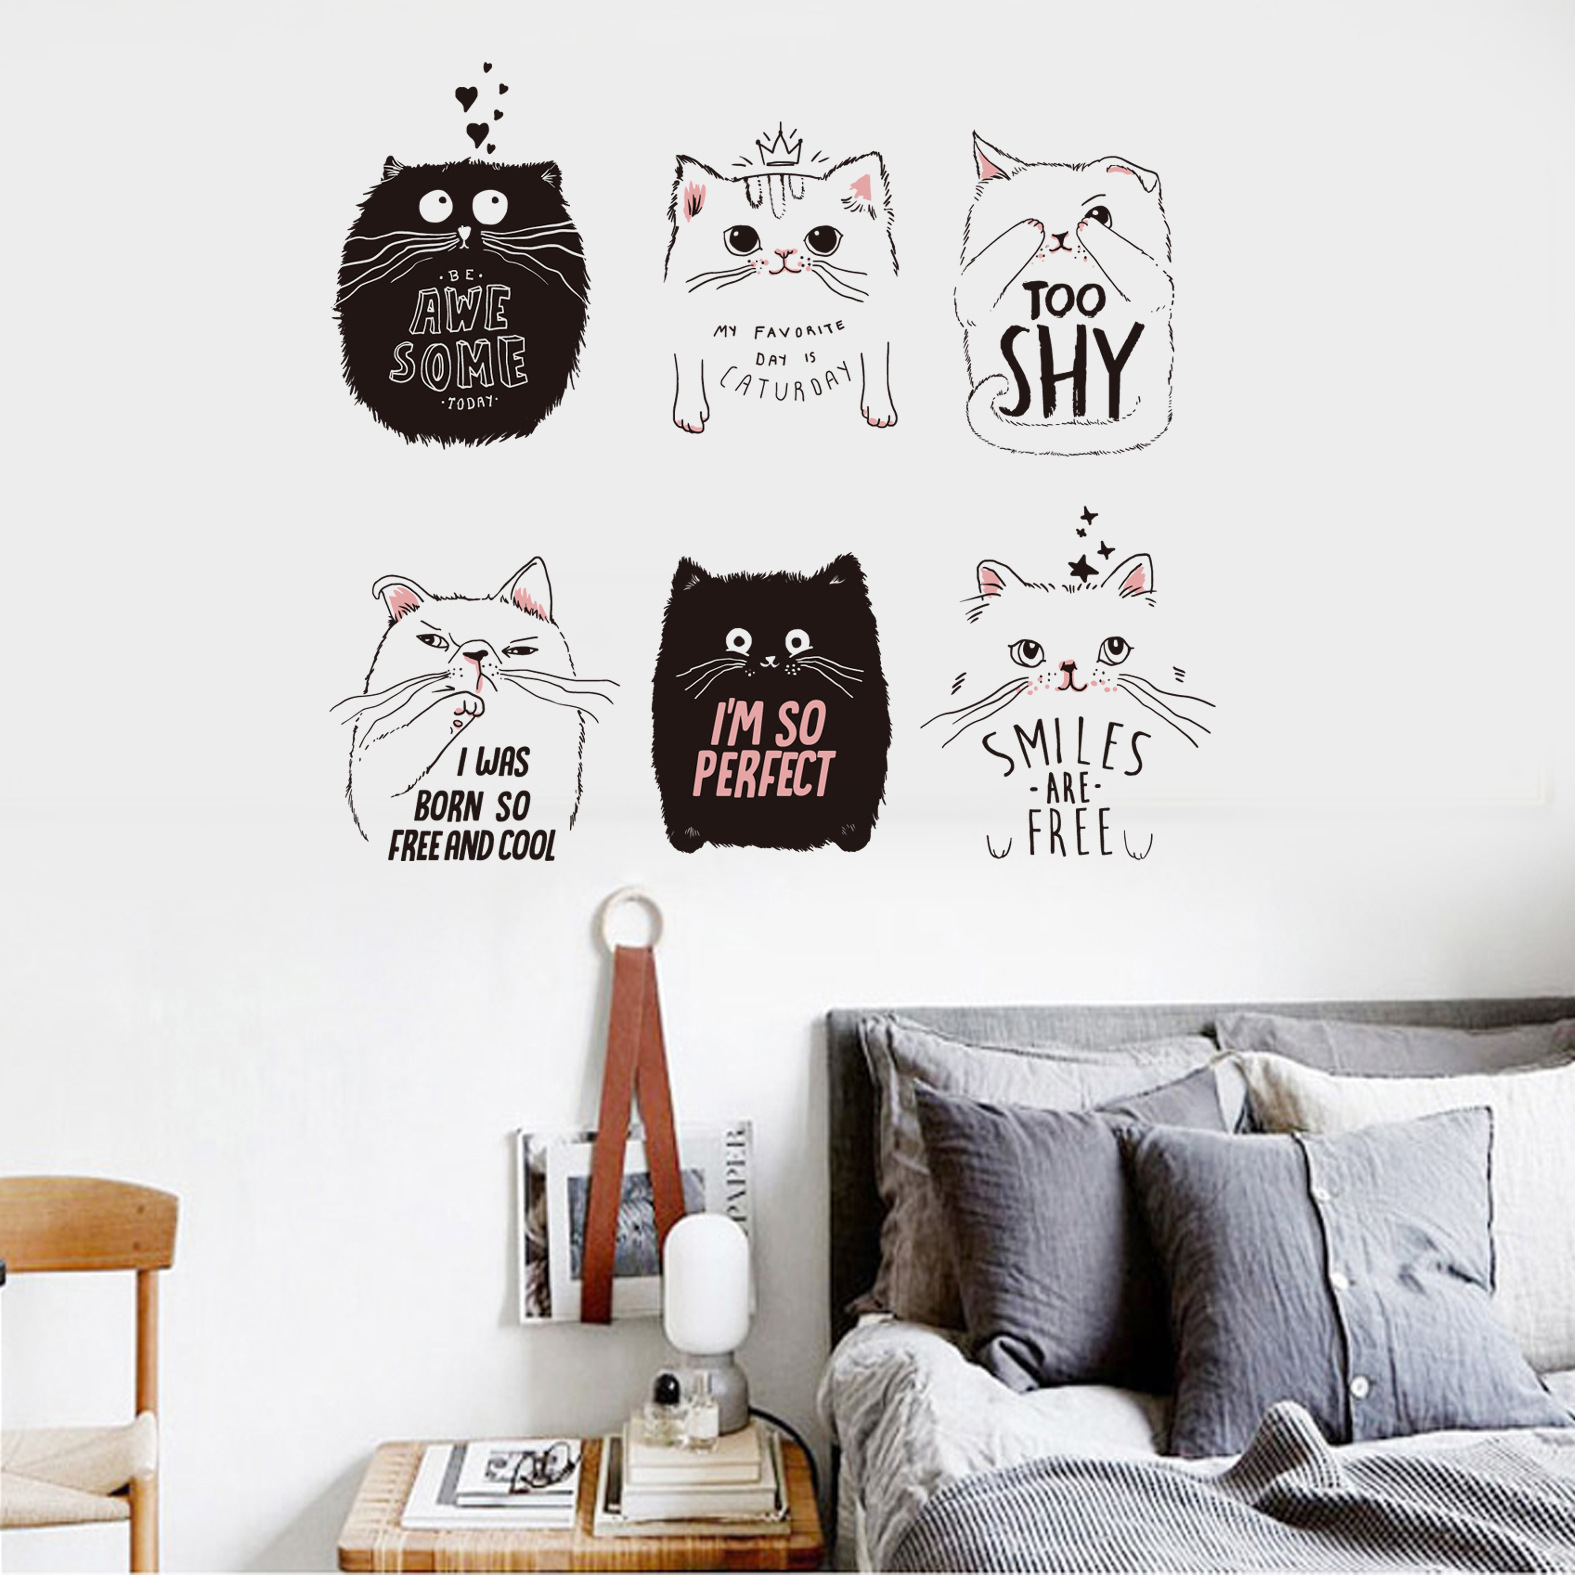 Newest Cute Cat Wall Stickers Fashion Home Decor 6 Pcs Cats Black White Cats Wallpapers DIY Kids Room Decoration